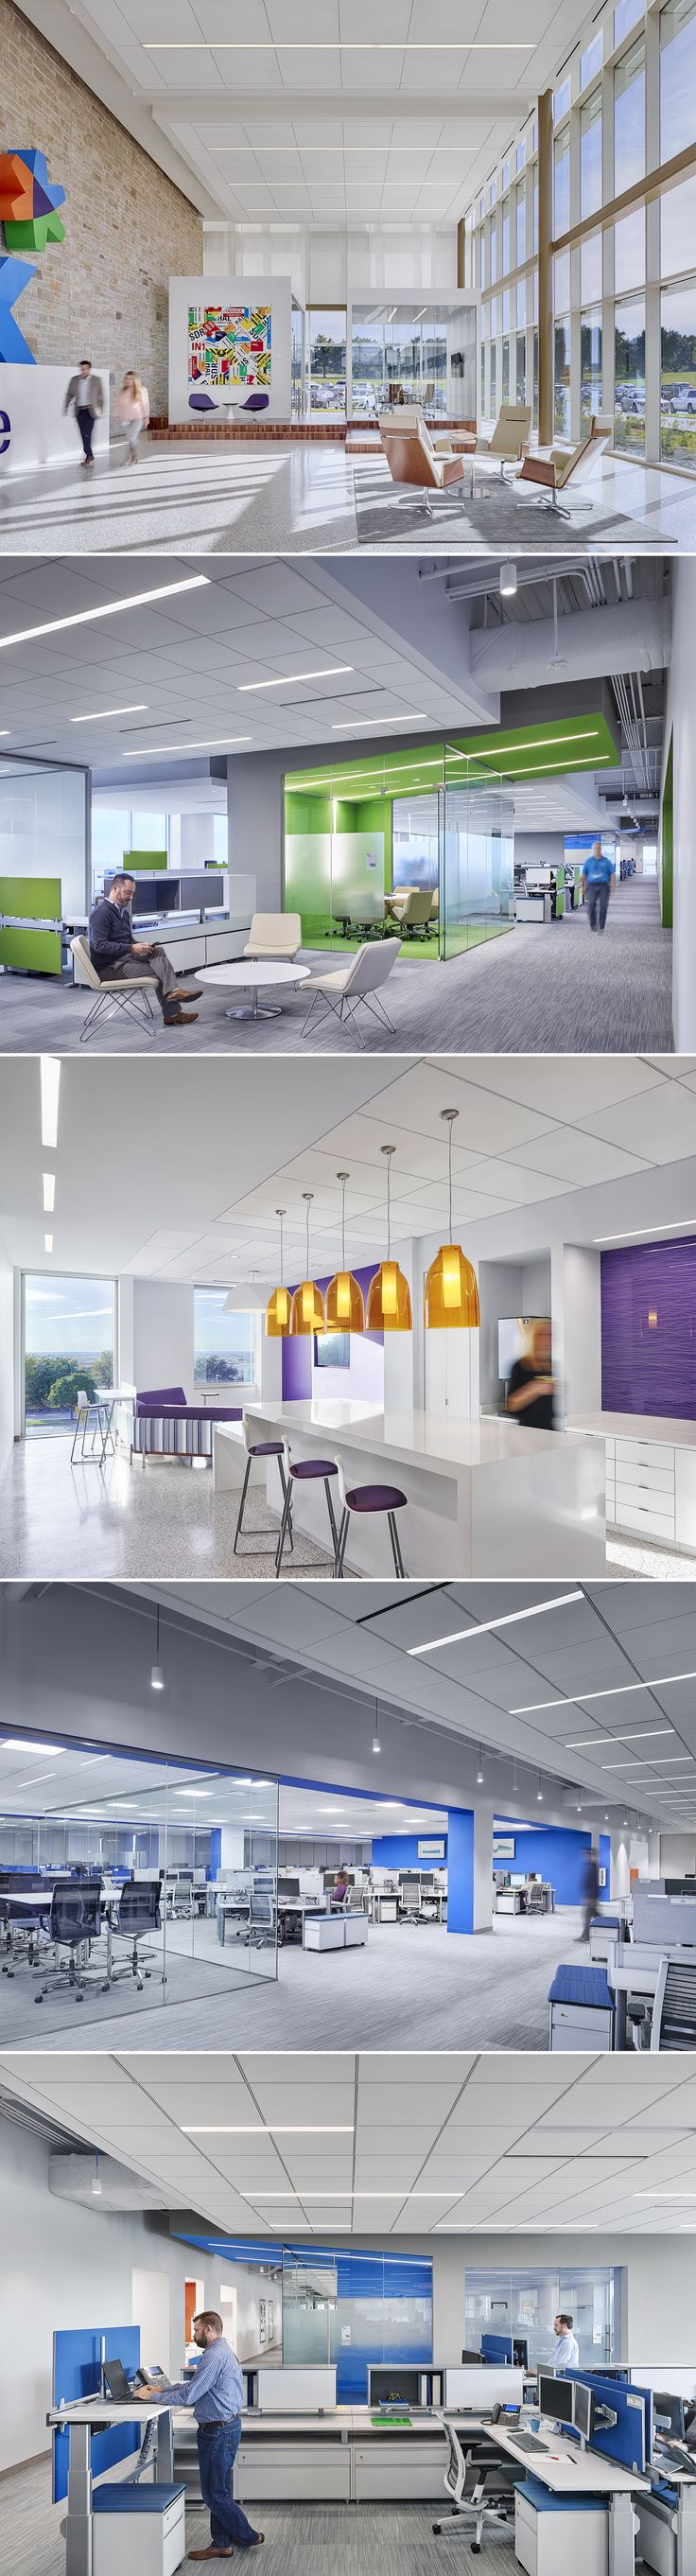 Best 25+ Commercial office space ideas on Pinterest | Office space ...